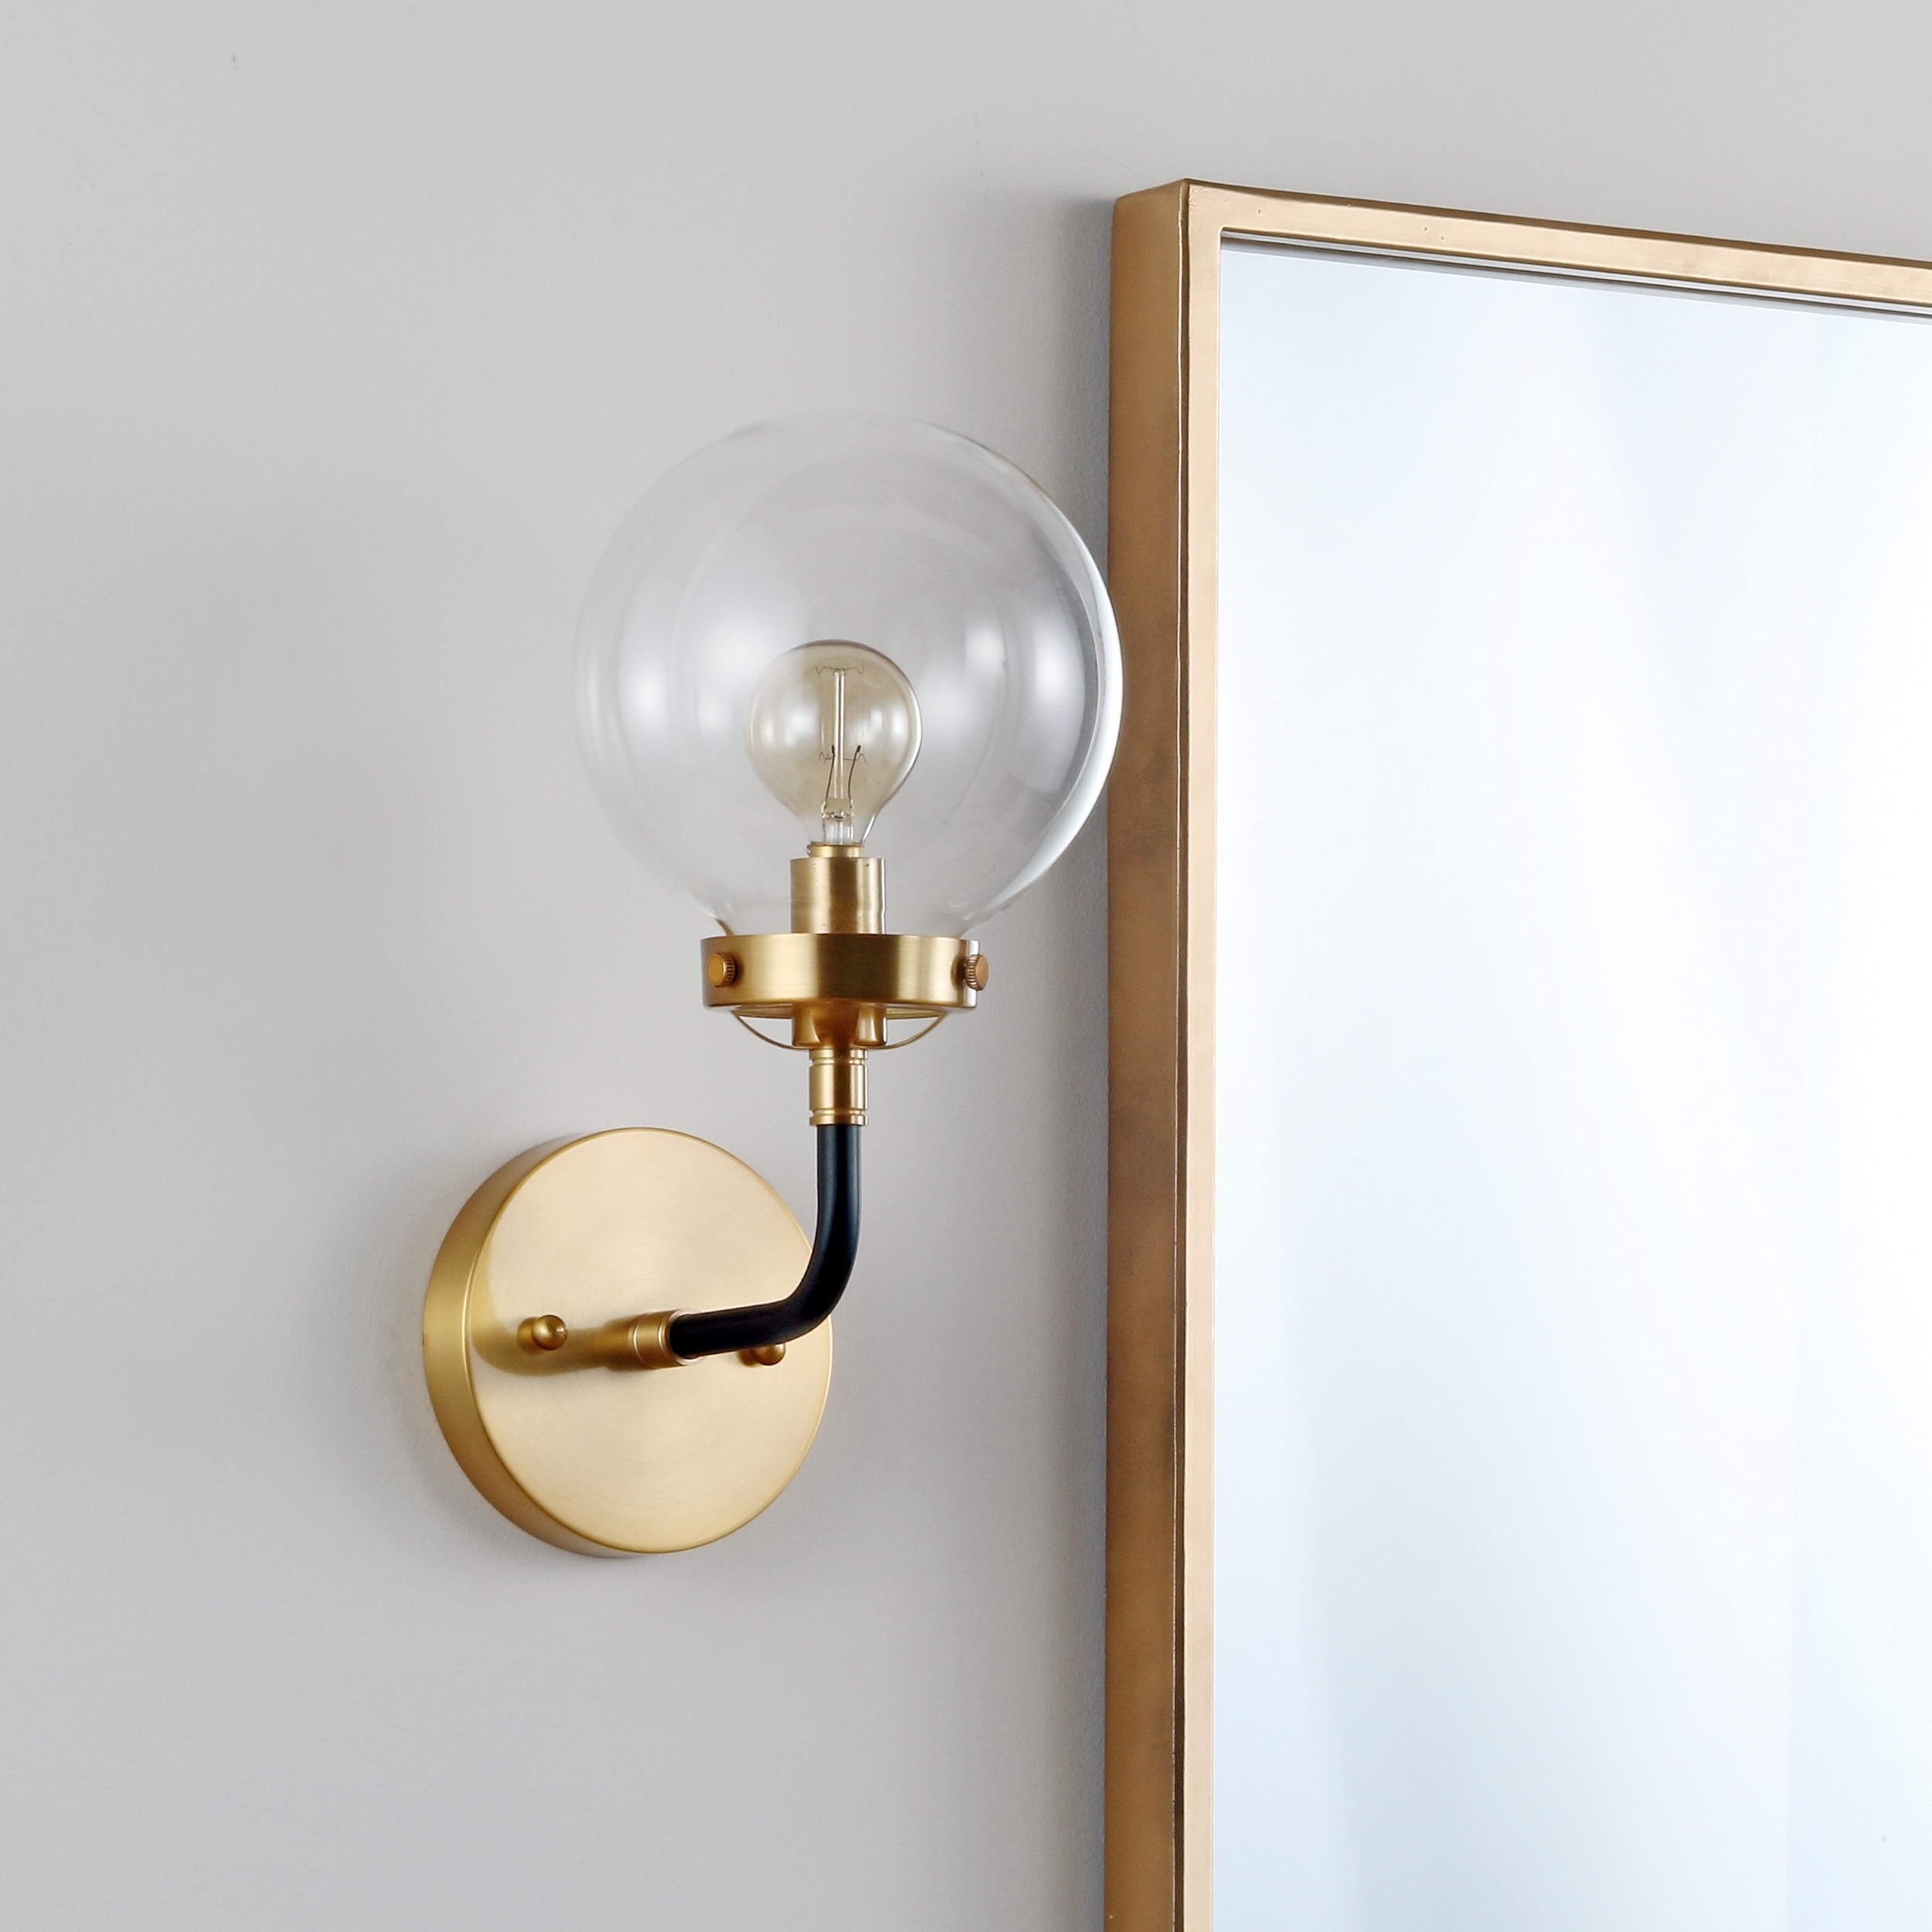 Shop caleb 1 light 8 brass wall sconce black brass by jonathan y on sale free shipping today overstock com 20711821